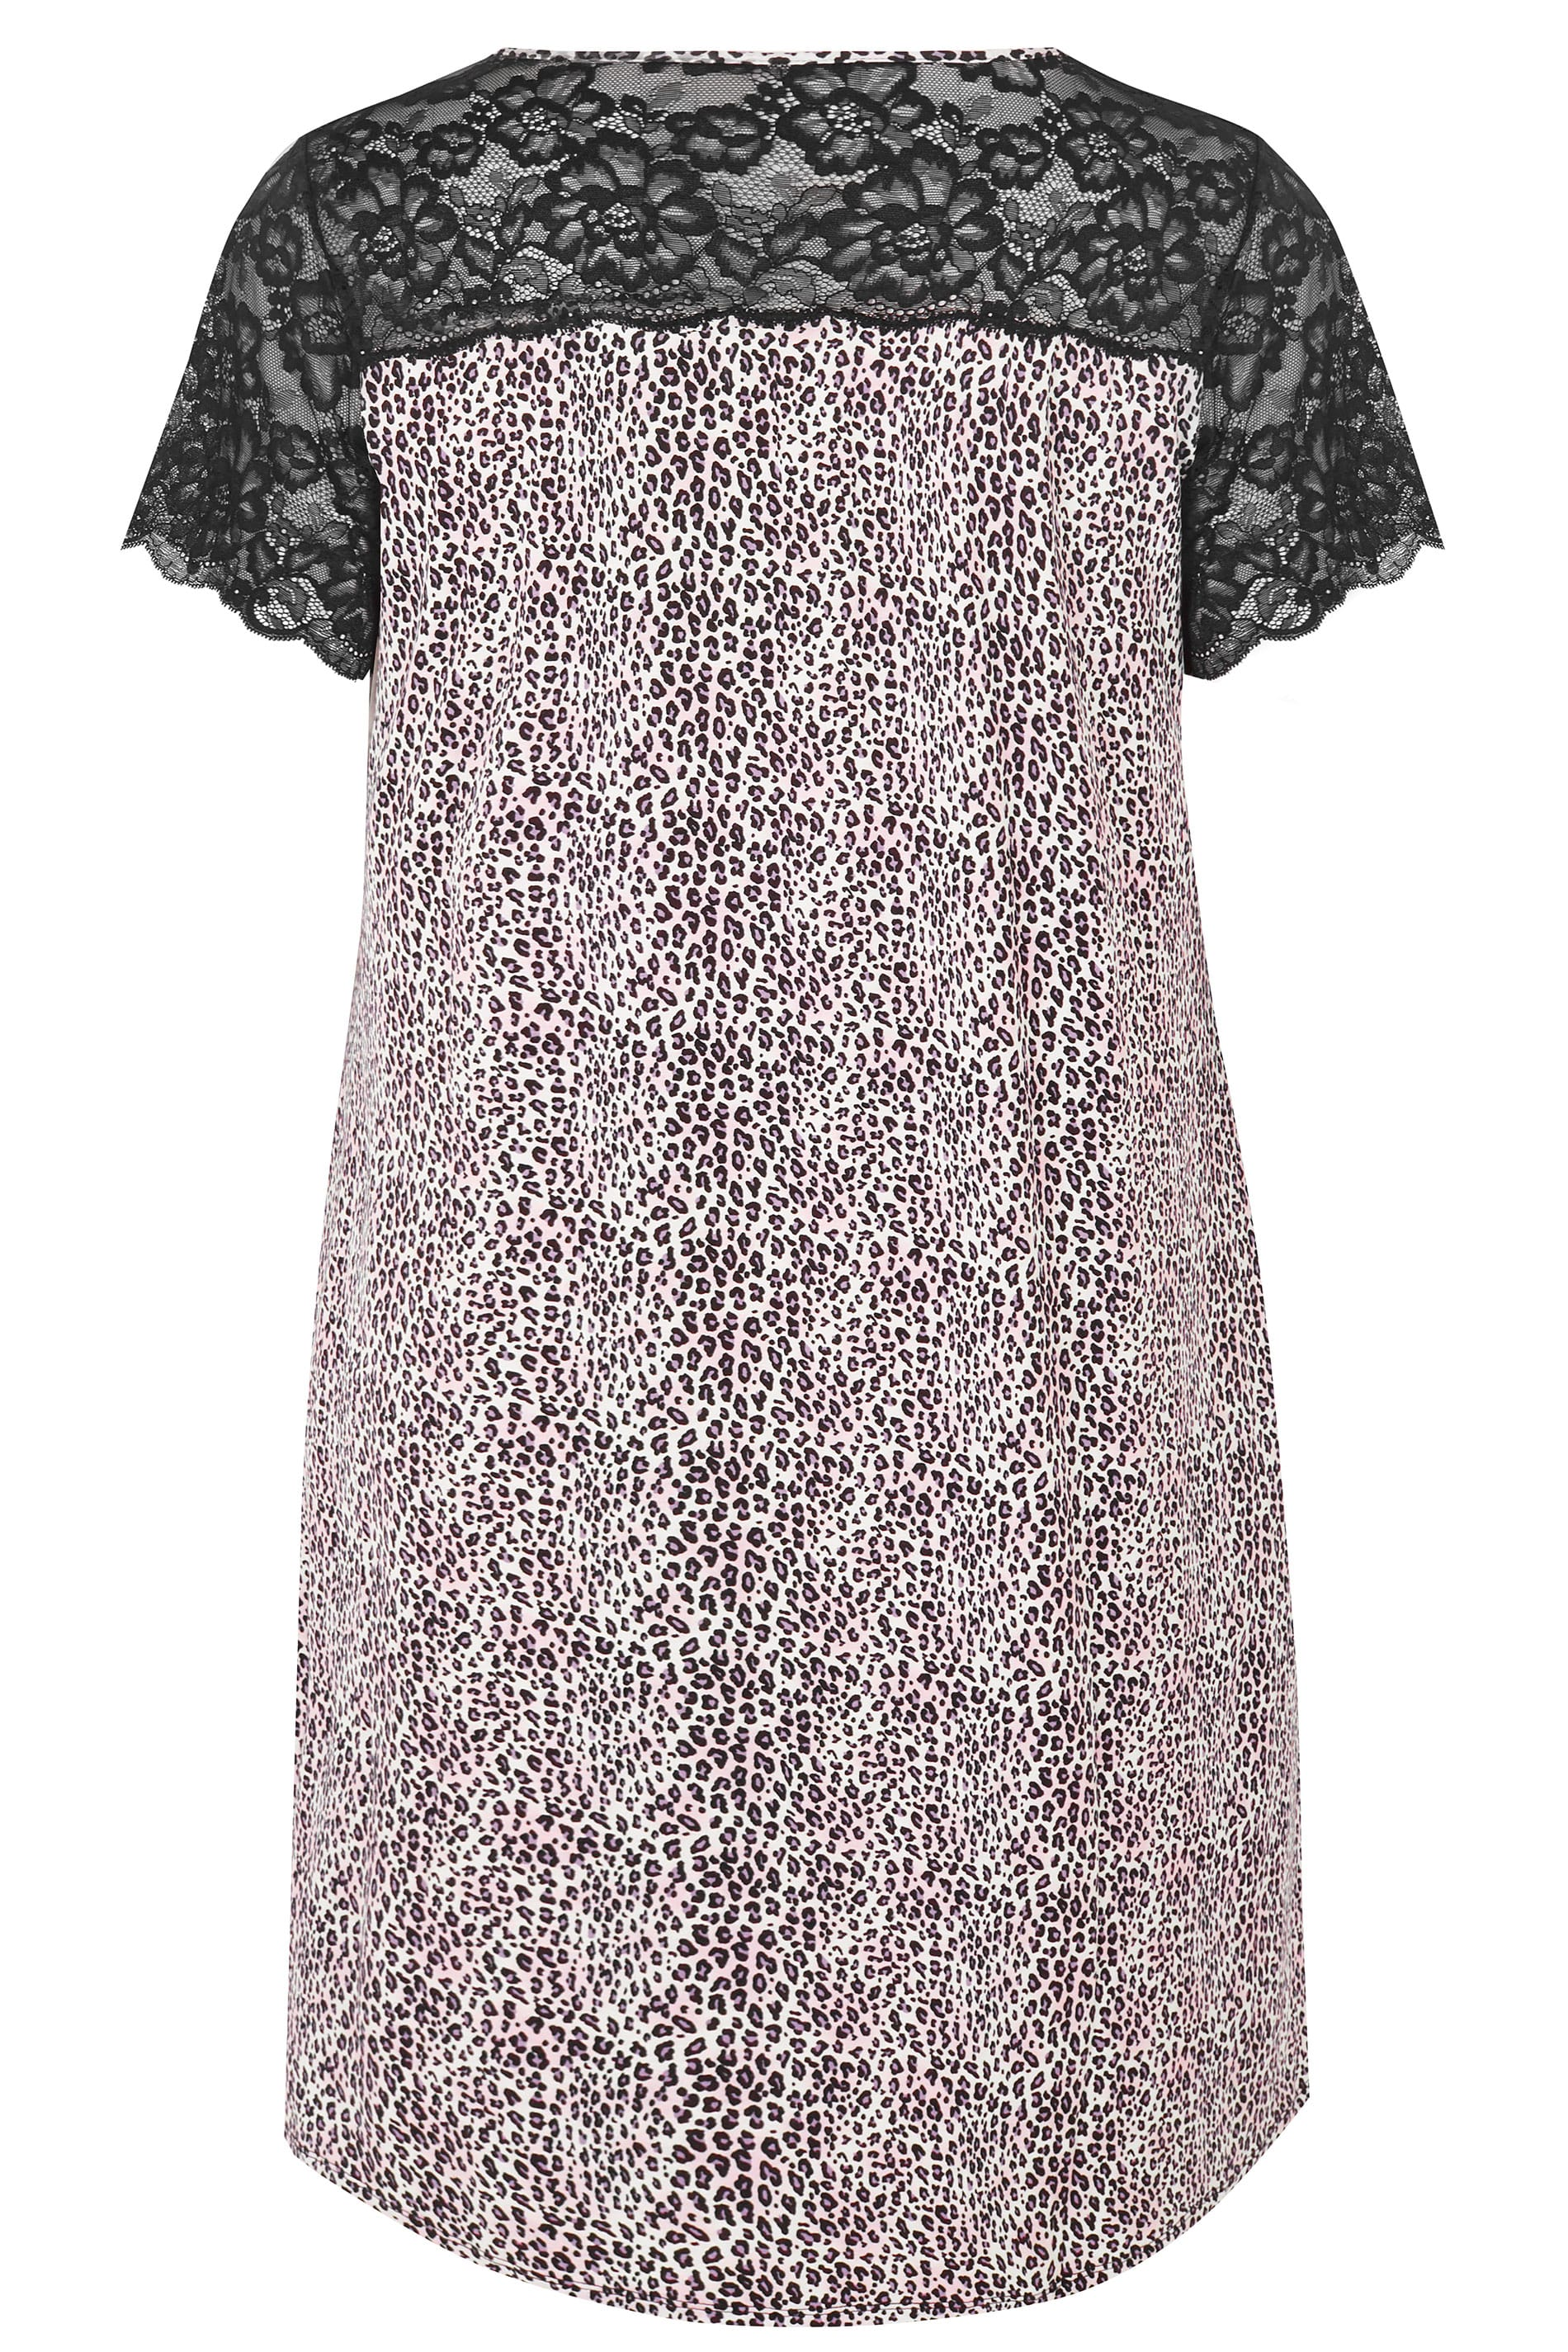 760cabcfbe Black   Purple Leopard Print Lace Loungewear Nightdress. ‹ ›